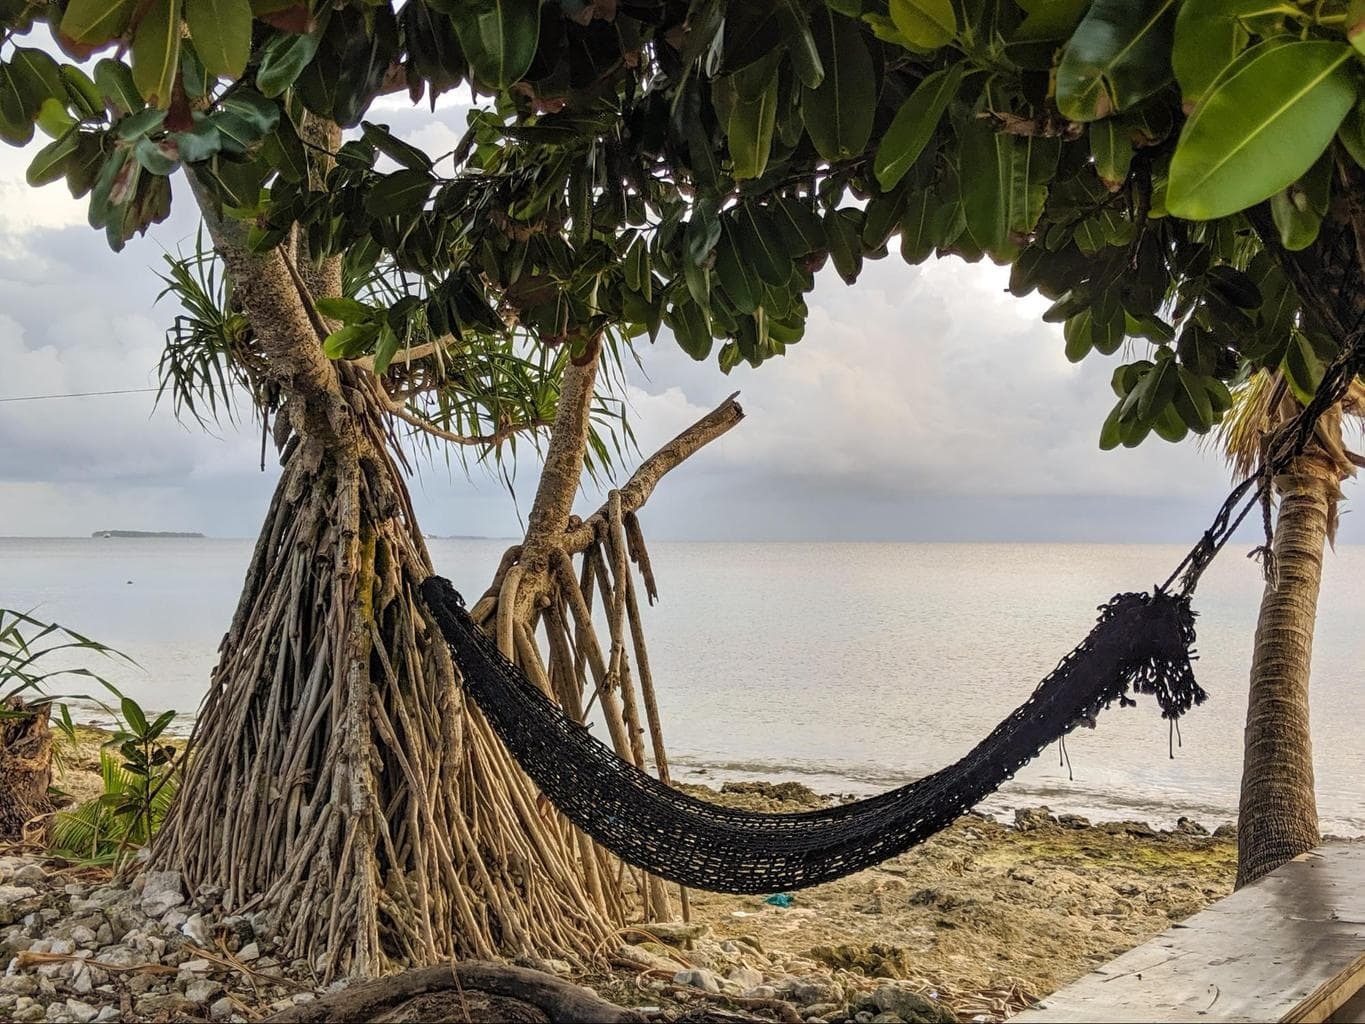 One of the many hammocks in Tuvalu